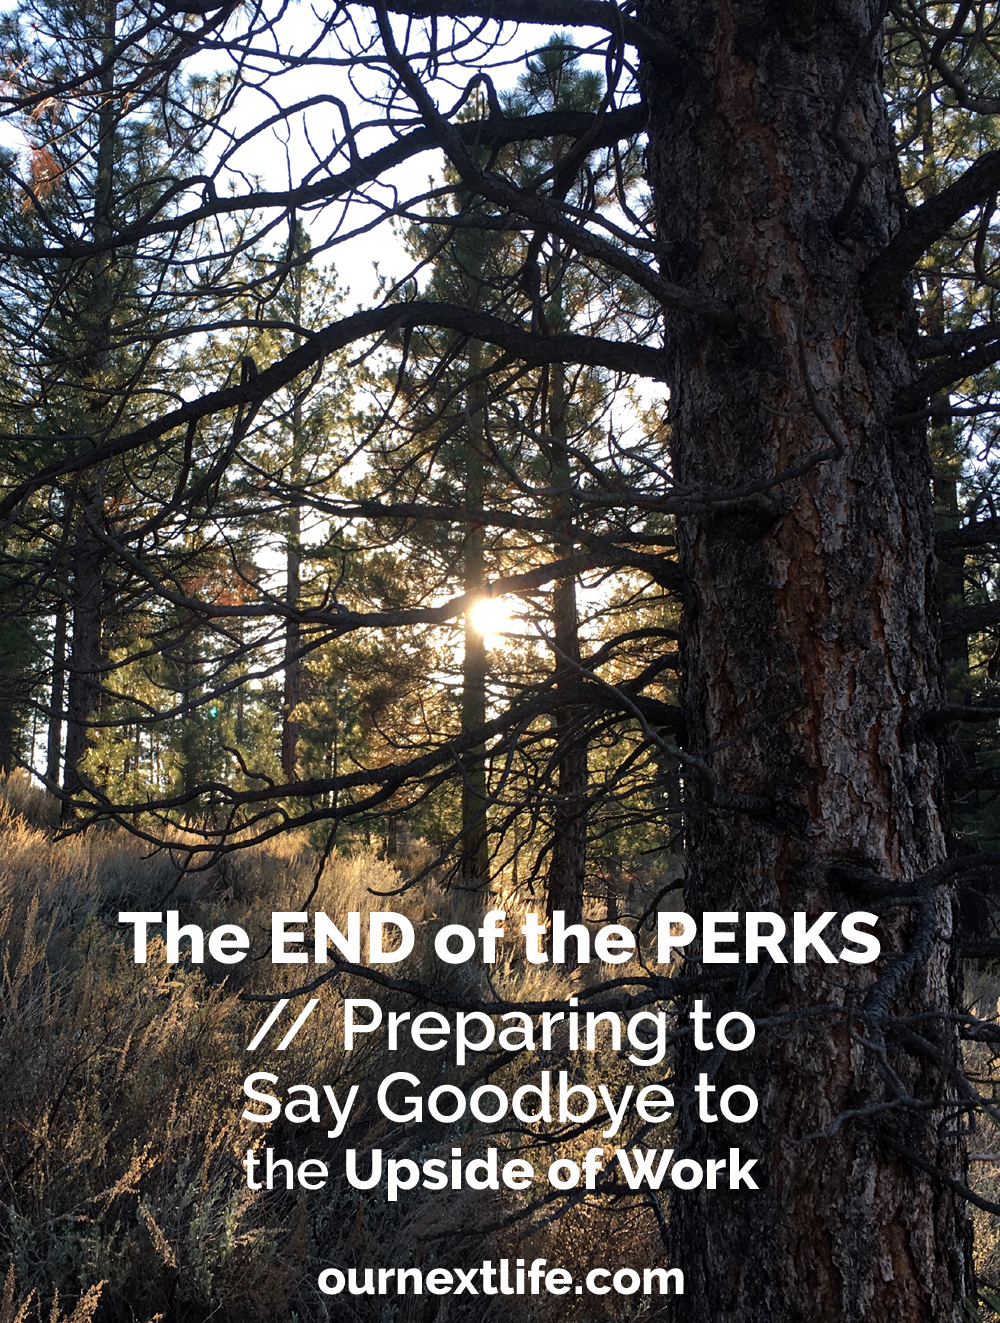 OurNextLife.com // The End of the Perks // Preparing to Say Goodbye to the Upside of Work // Work provides travel perks in abundance, and we're in the process of preparing ourselves to lose all those things when we retire early next year!